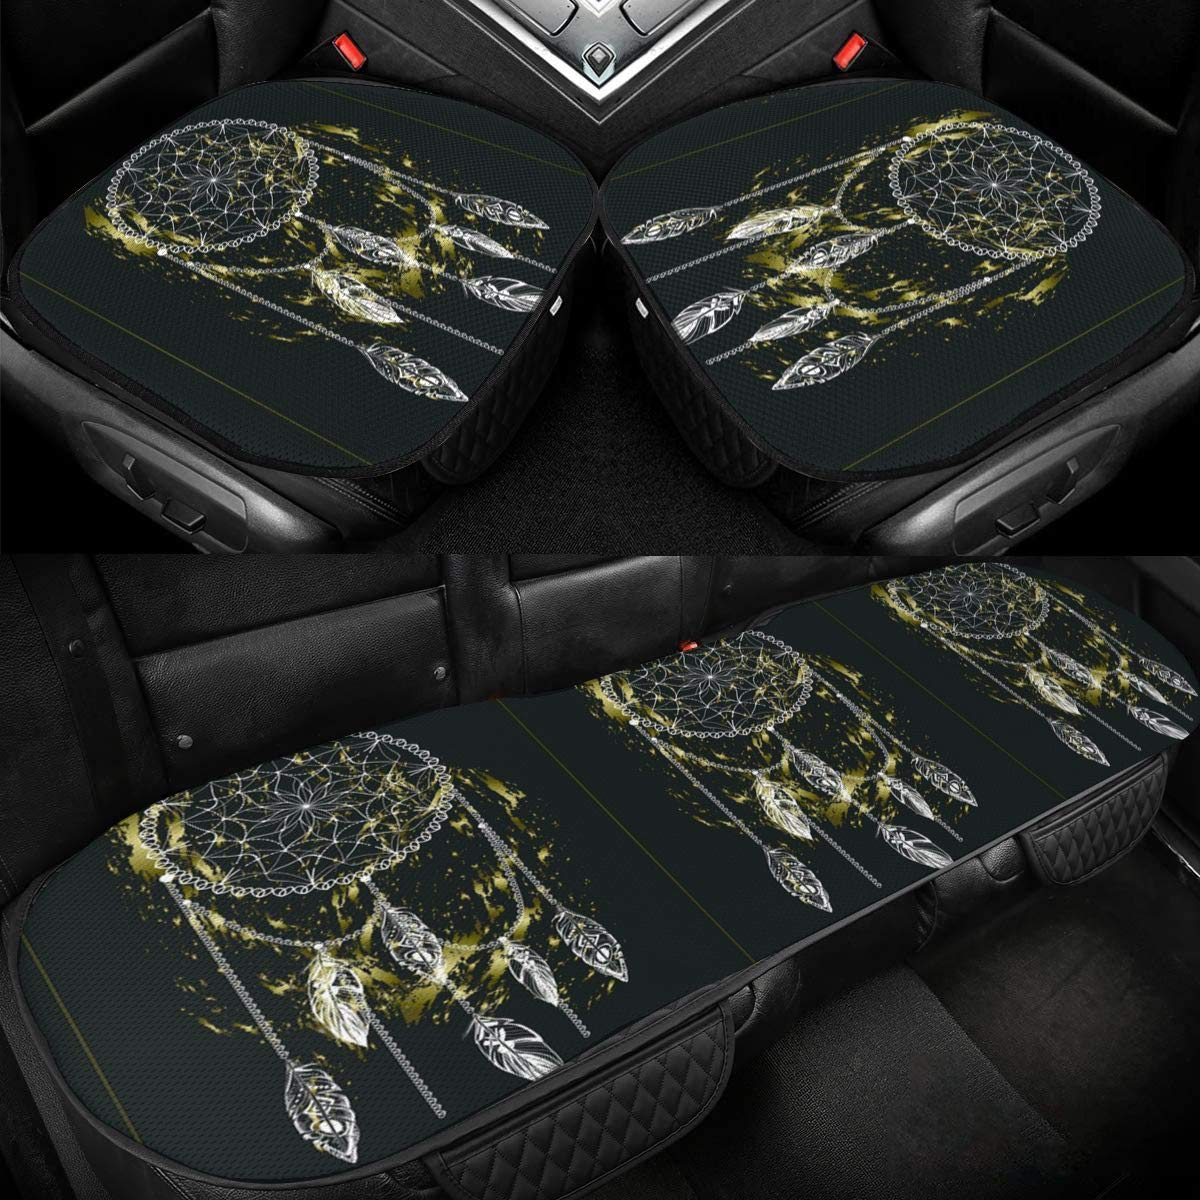 Dream Catcher with Feathers Car Ice Silk Seat Cushion Pad 3 Pieces Sets Comfort Seat Protector for Car Driver Seat Office Chair Home Use Seat Cushion